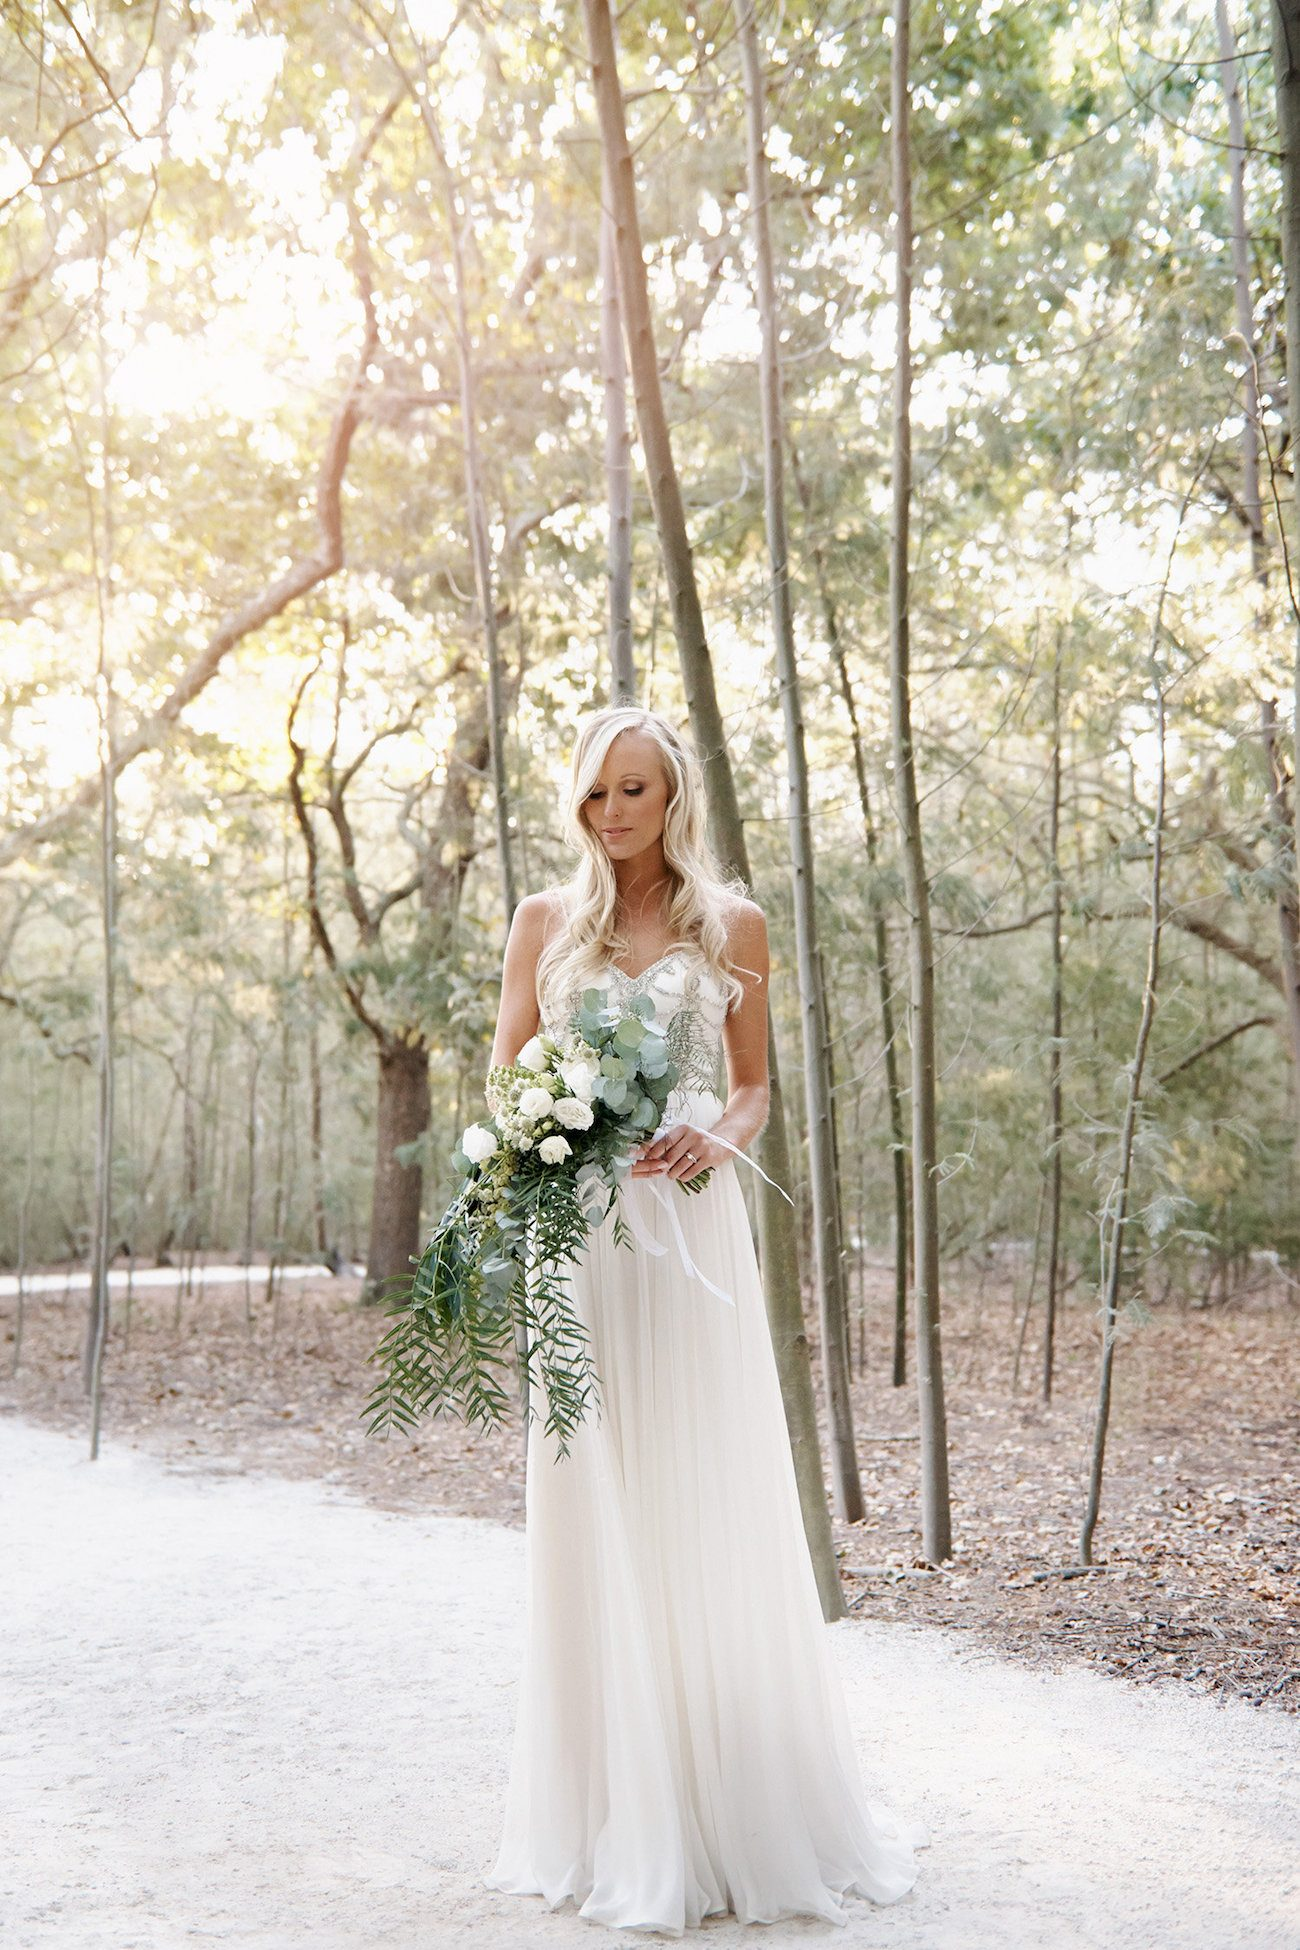 Beautiful Catherine Deane Wedding Dress | Image: Knit Together Photography